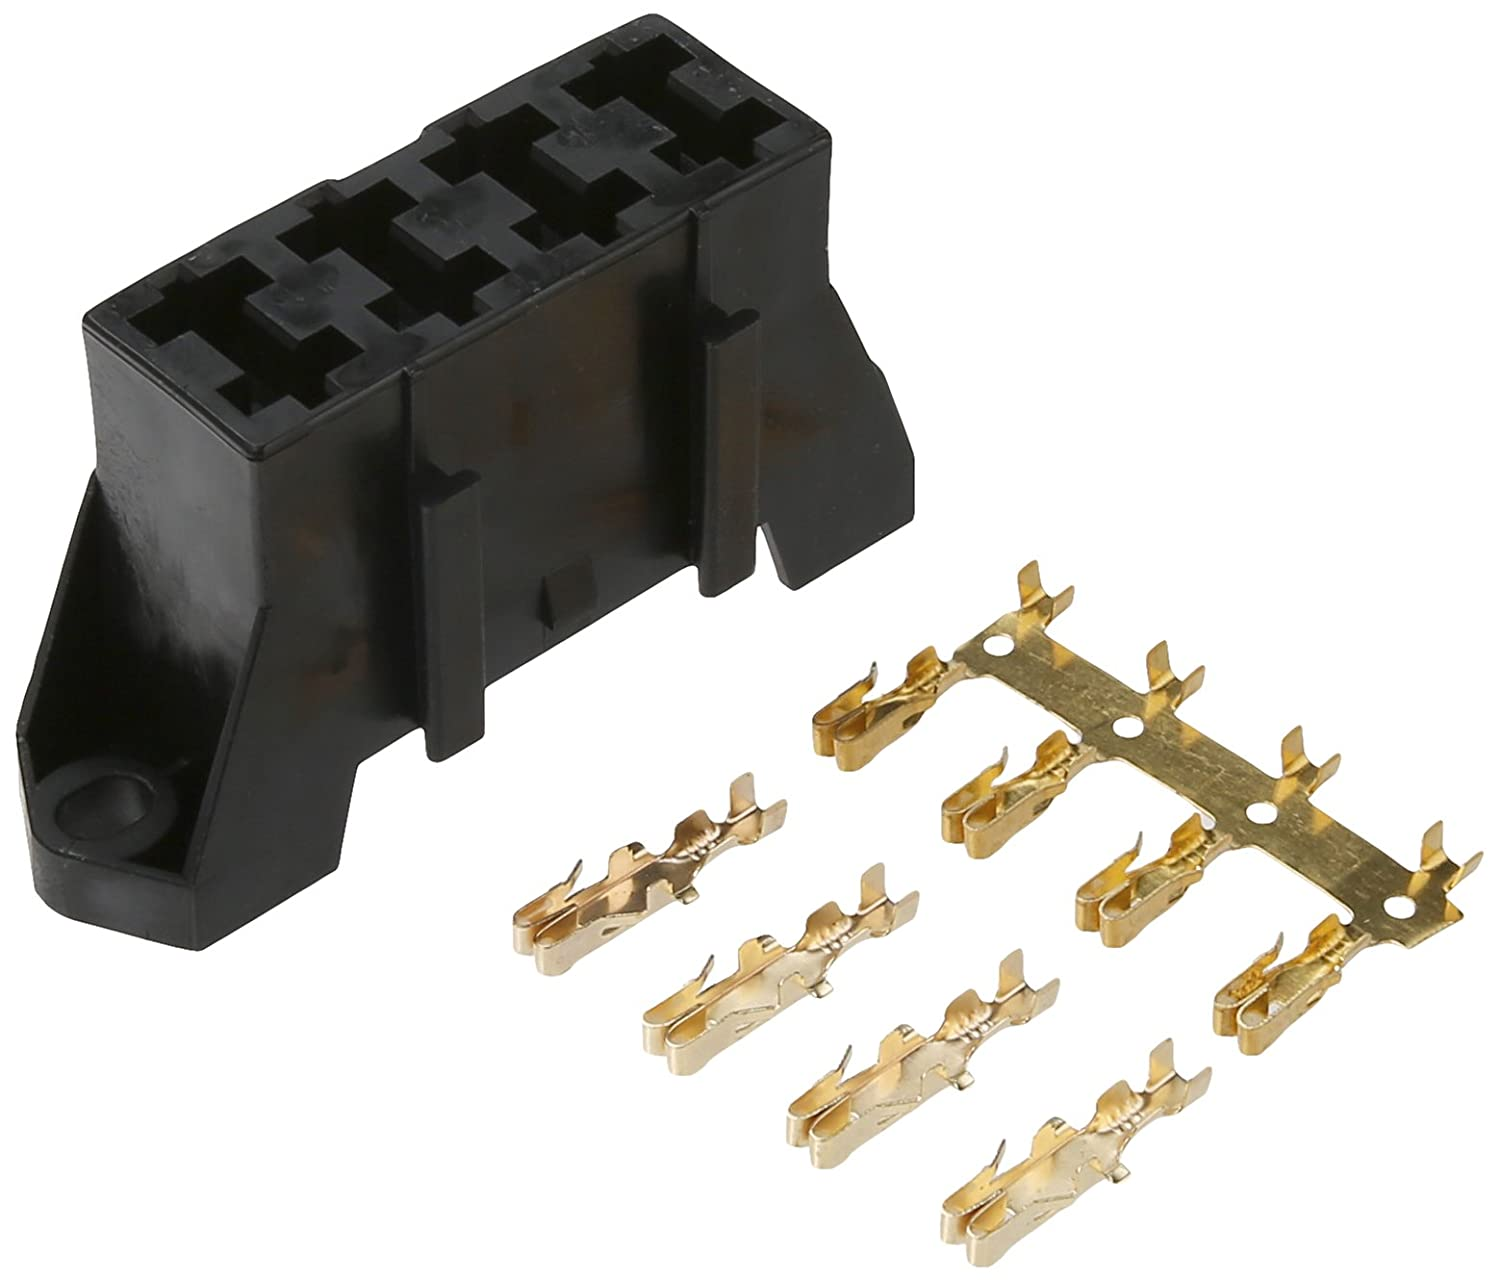 61MLvIzHm9L._SL1500_ amazon com dorman 85668 black fuse block holds 4 blade fuses 4 way fuse box at crackthecode.co